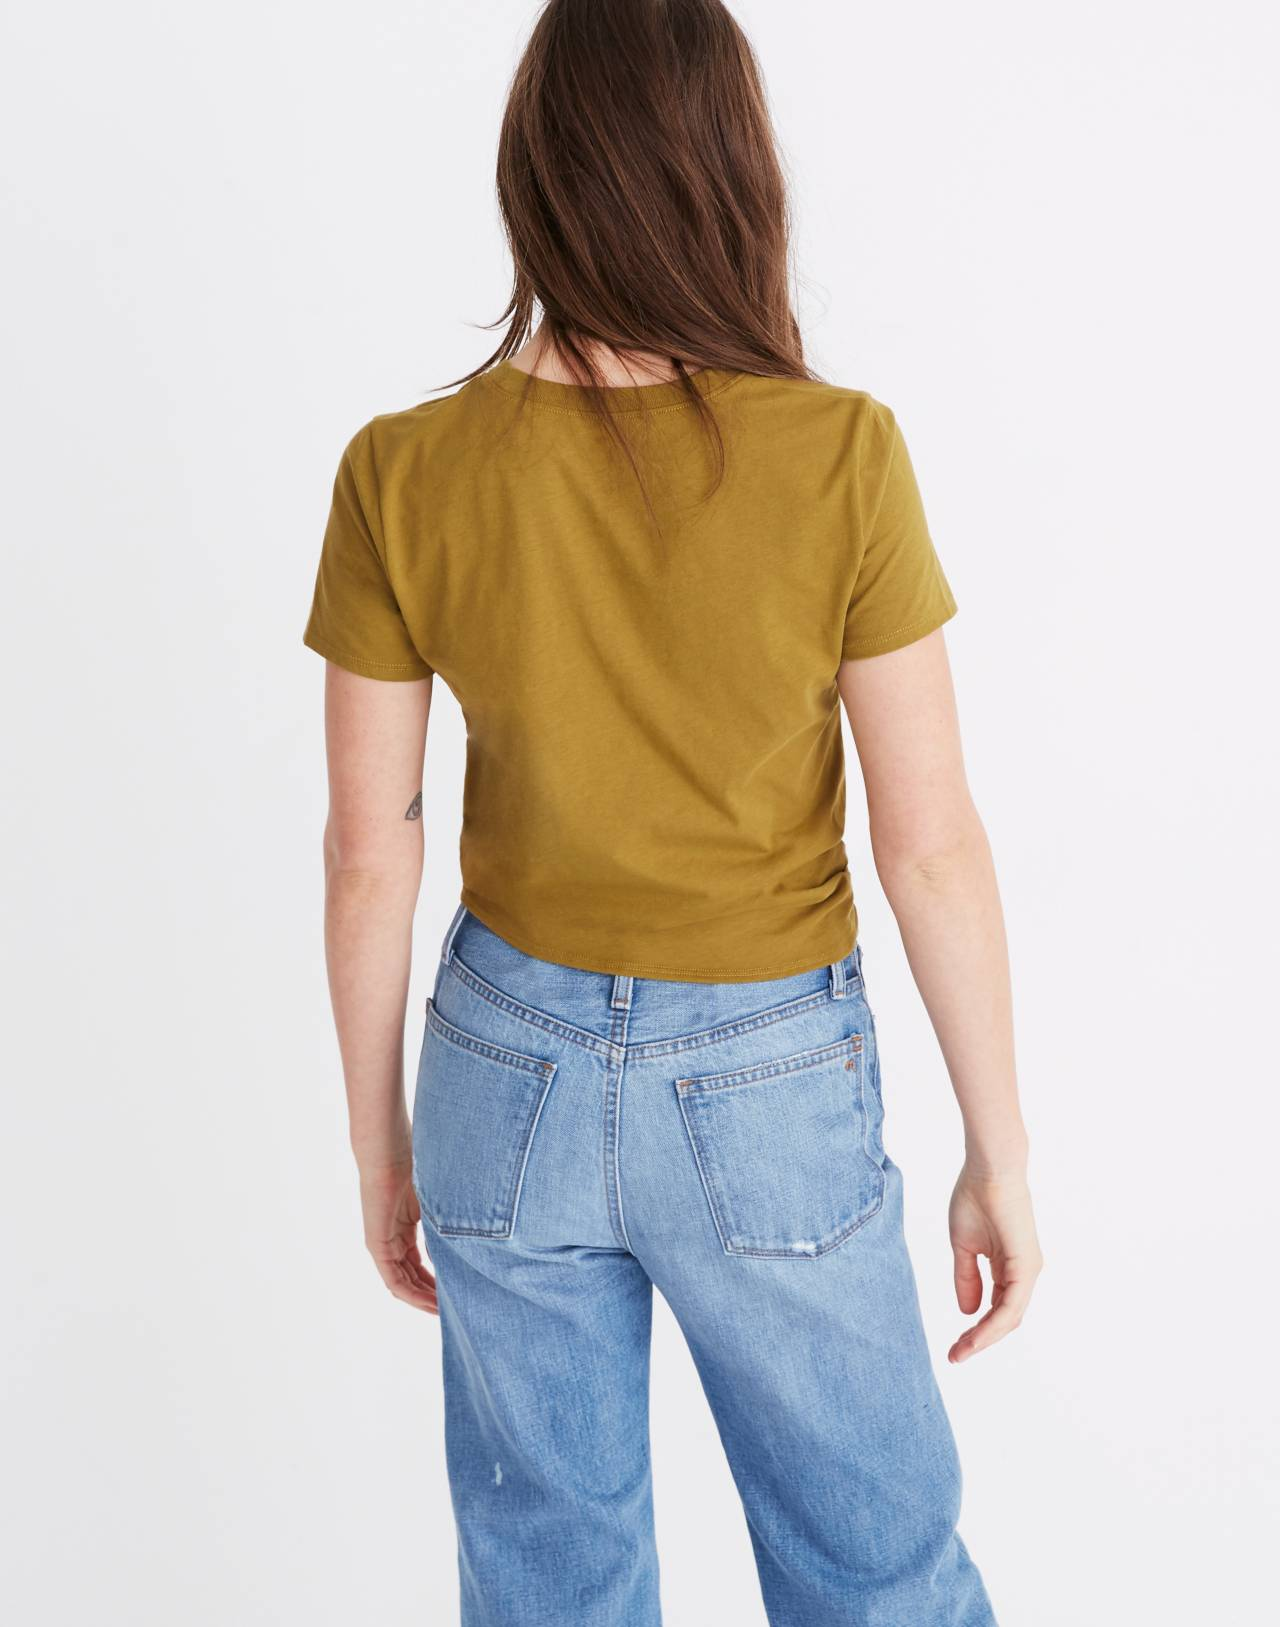 Knot-Front Tee in spiced olive image 3